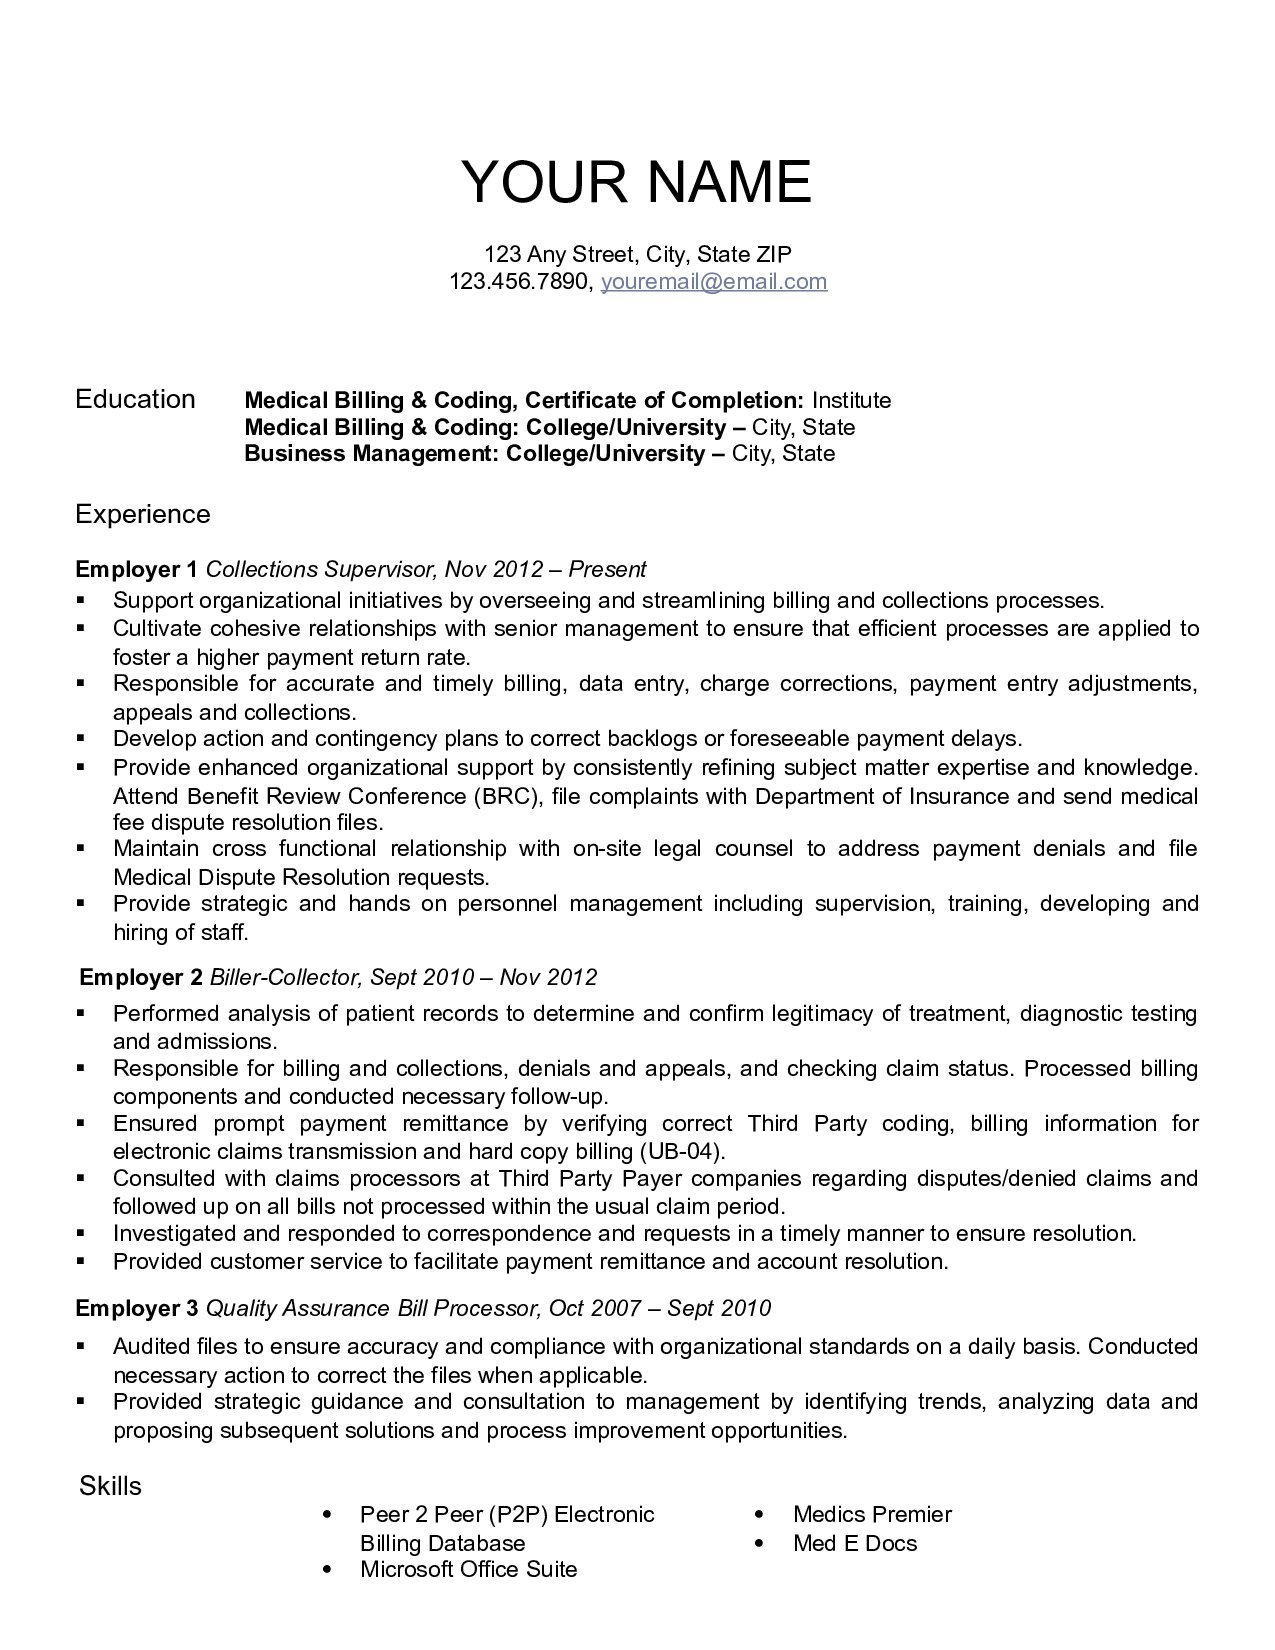 2019 licensed optician resumes examples